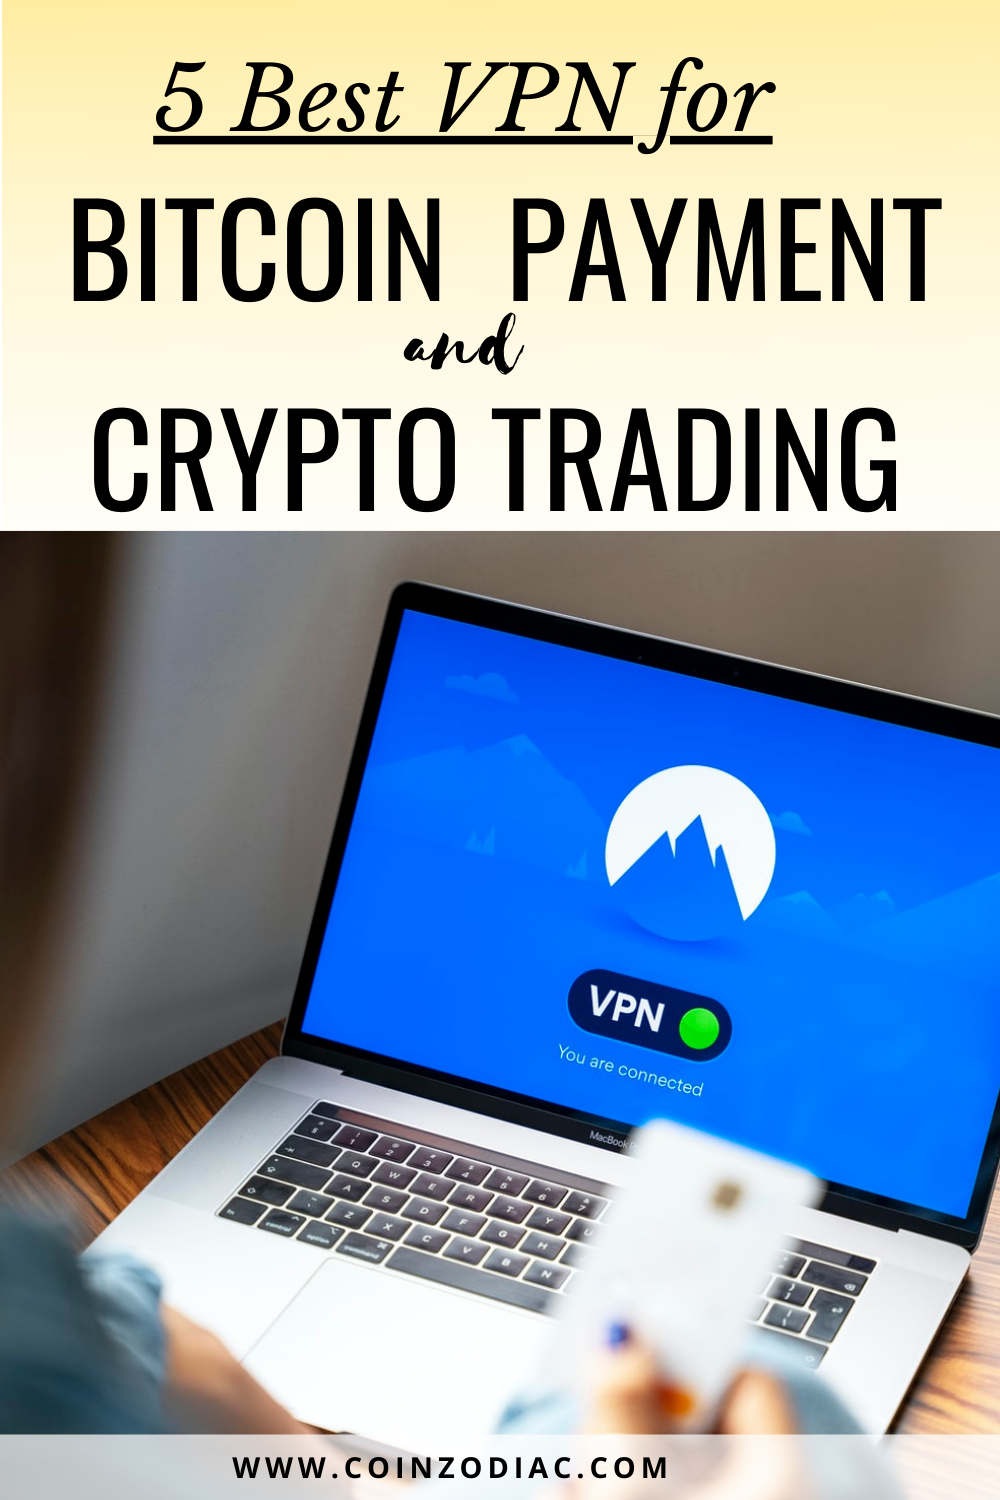 The 5 Best VPN for Bitcoin Payments and Crypto Trading